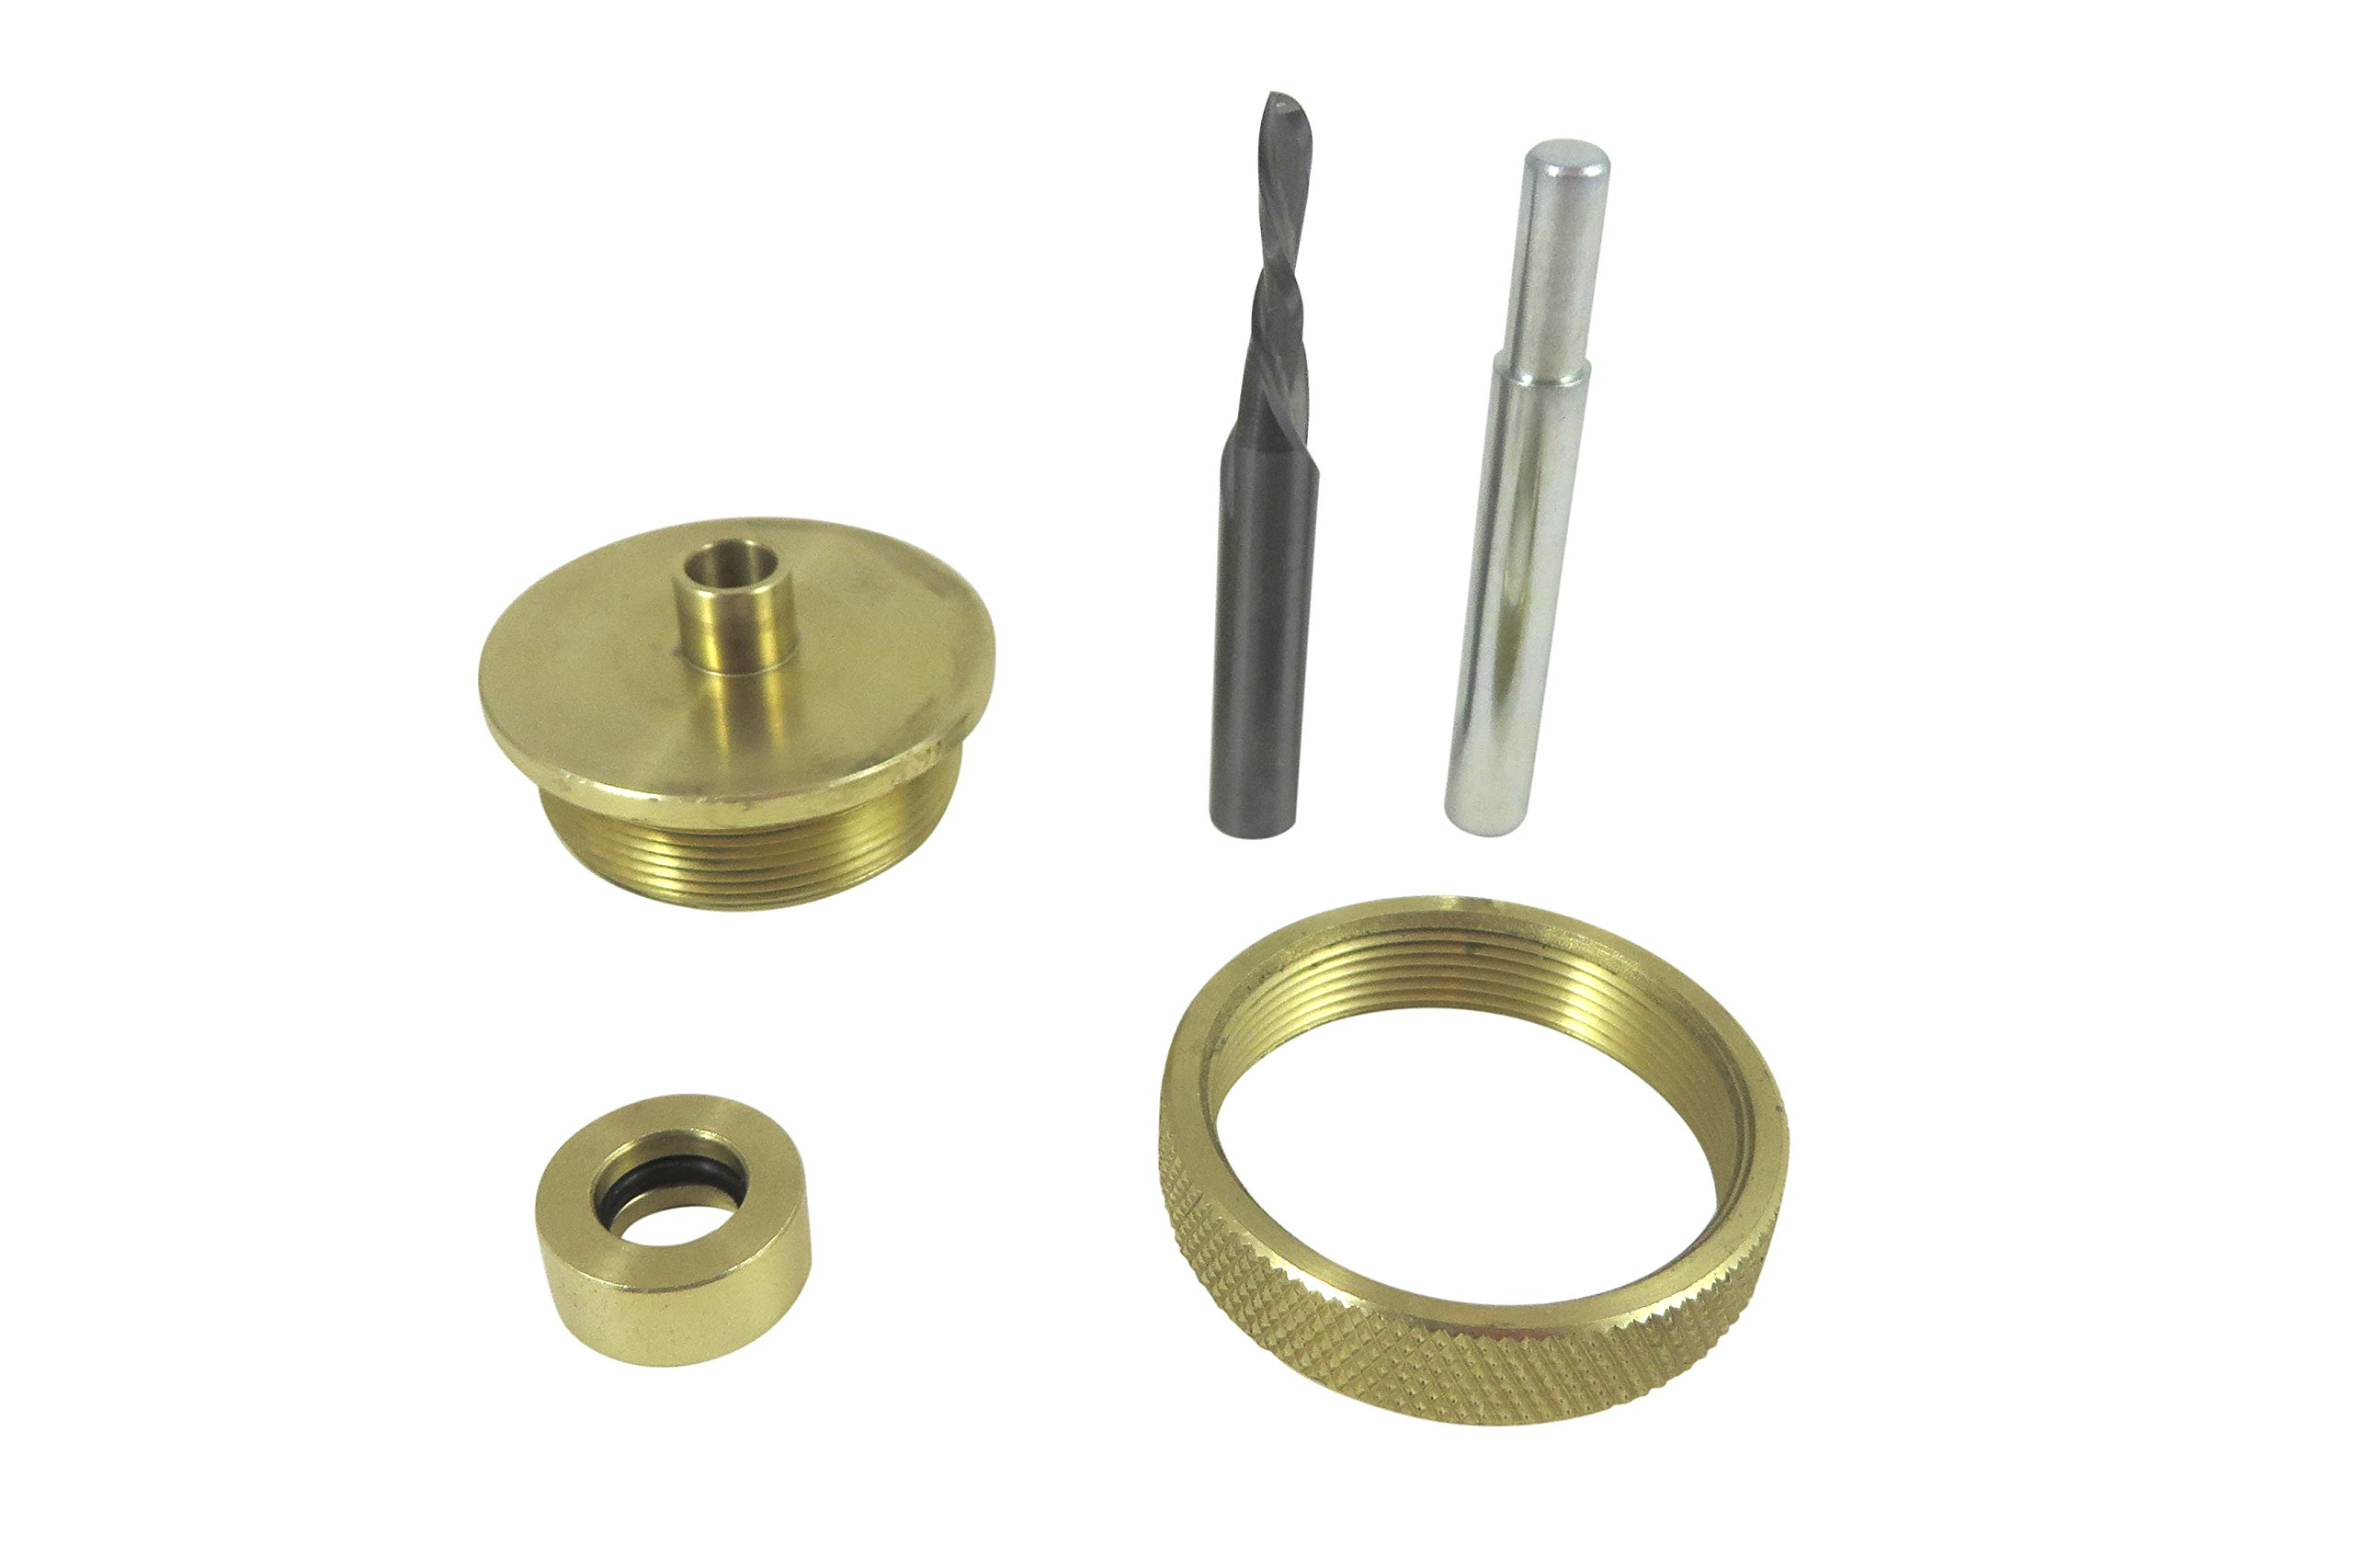 Taytools 300011 Router Inlay Kit Solid Brass 3 Piece Guide Bushing, 1/8 Inch Solid Carbide Downcut Bit and Alignment Pin by Taytools